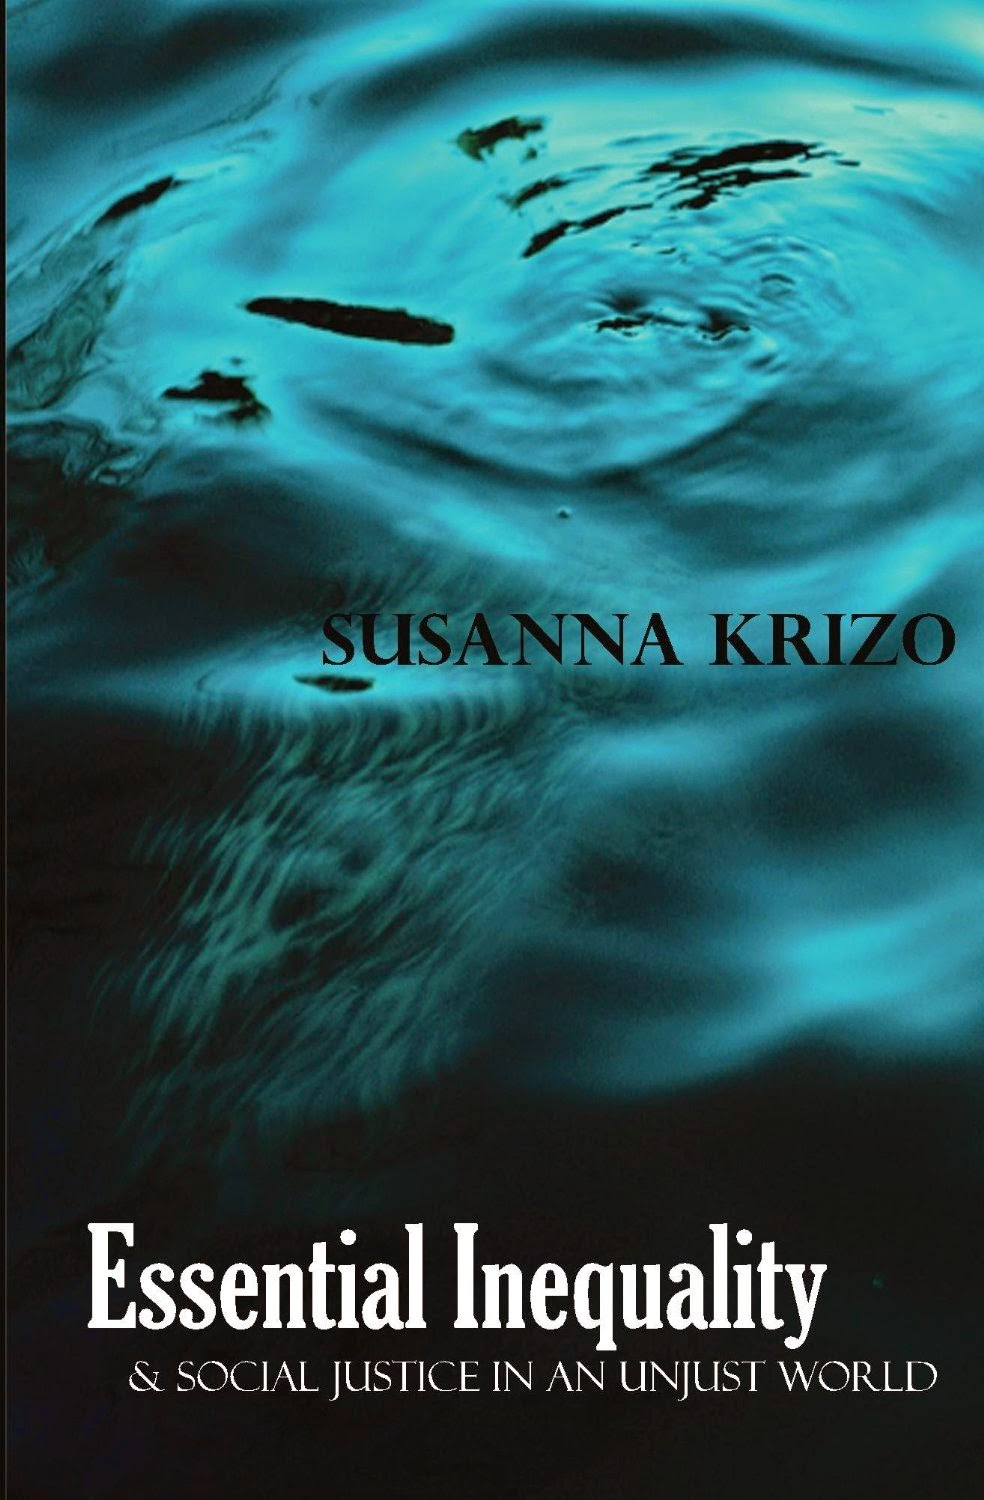 Books by Susanna Krizo